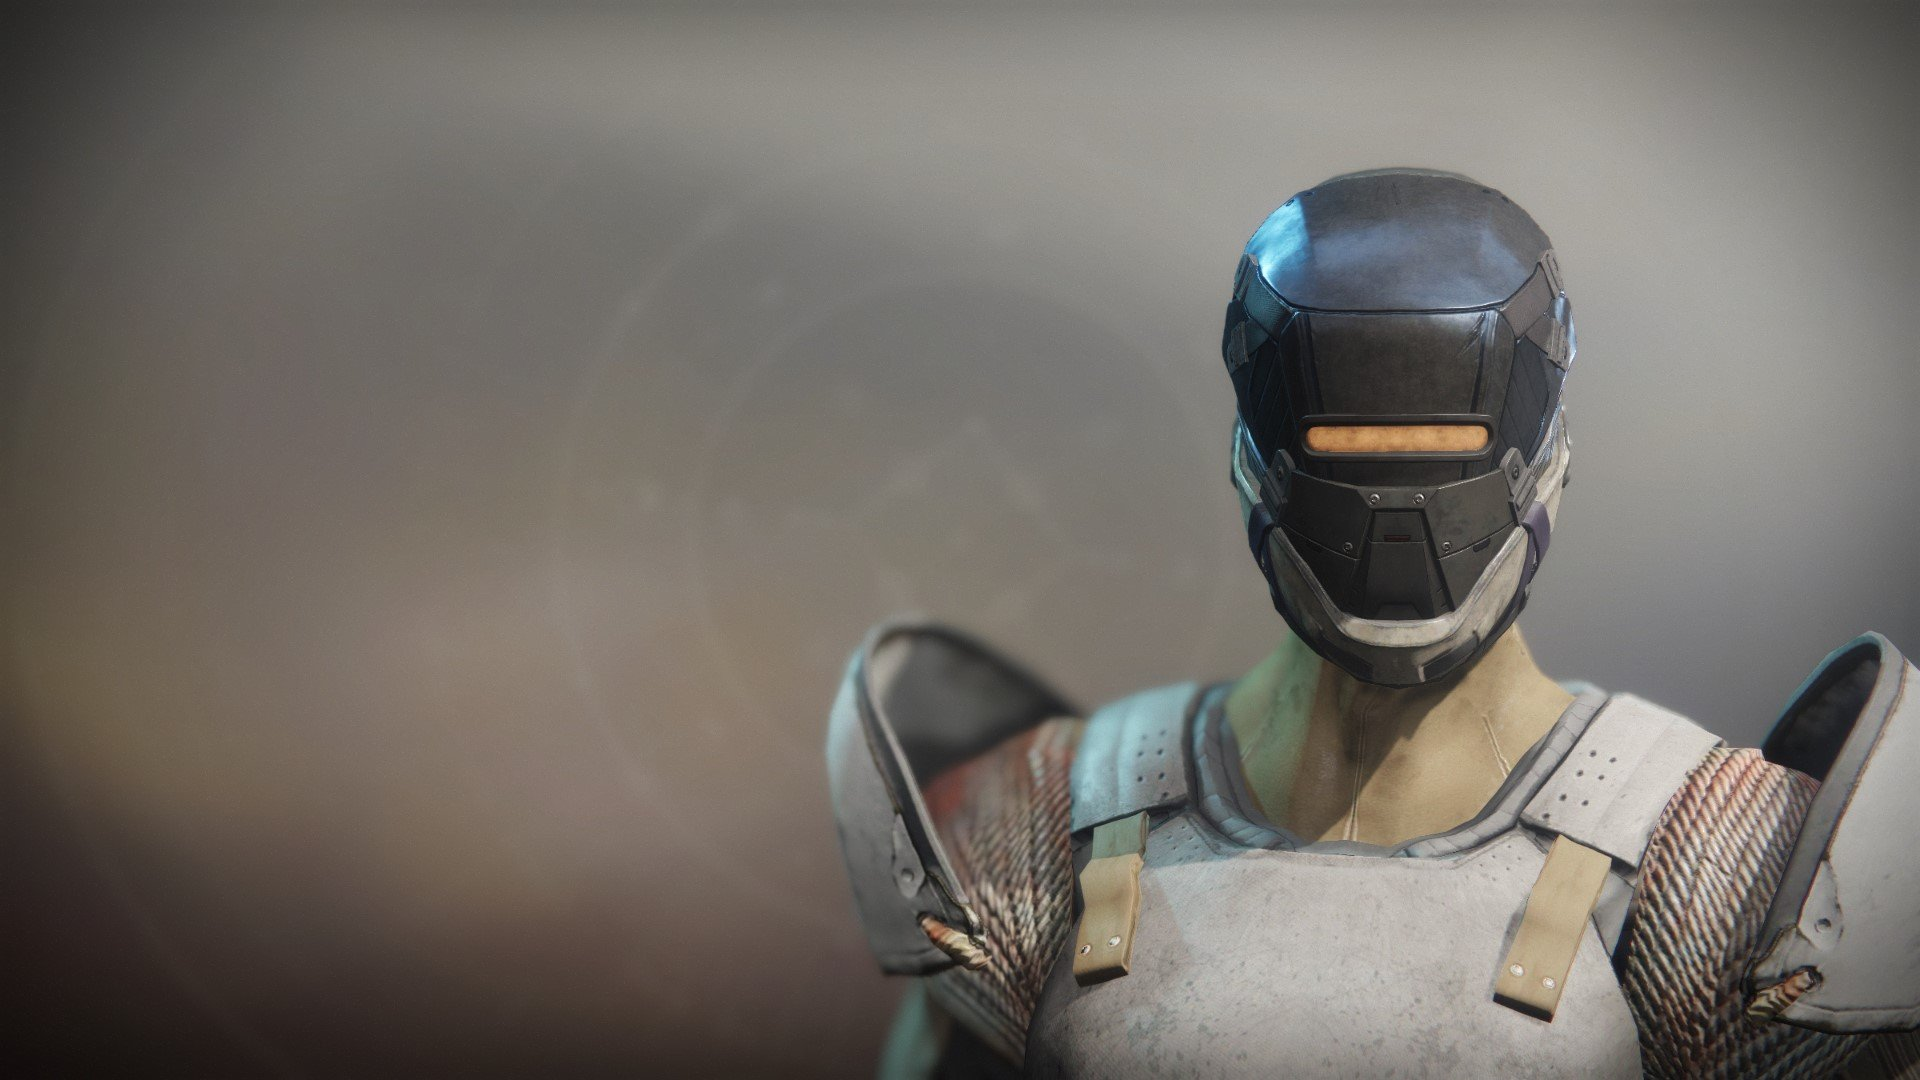 An in-game render of the Intrepid Exploit Helm.